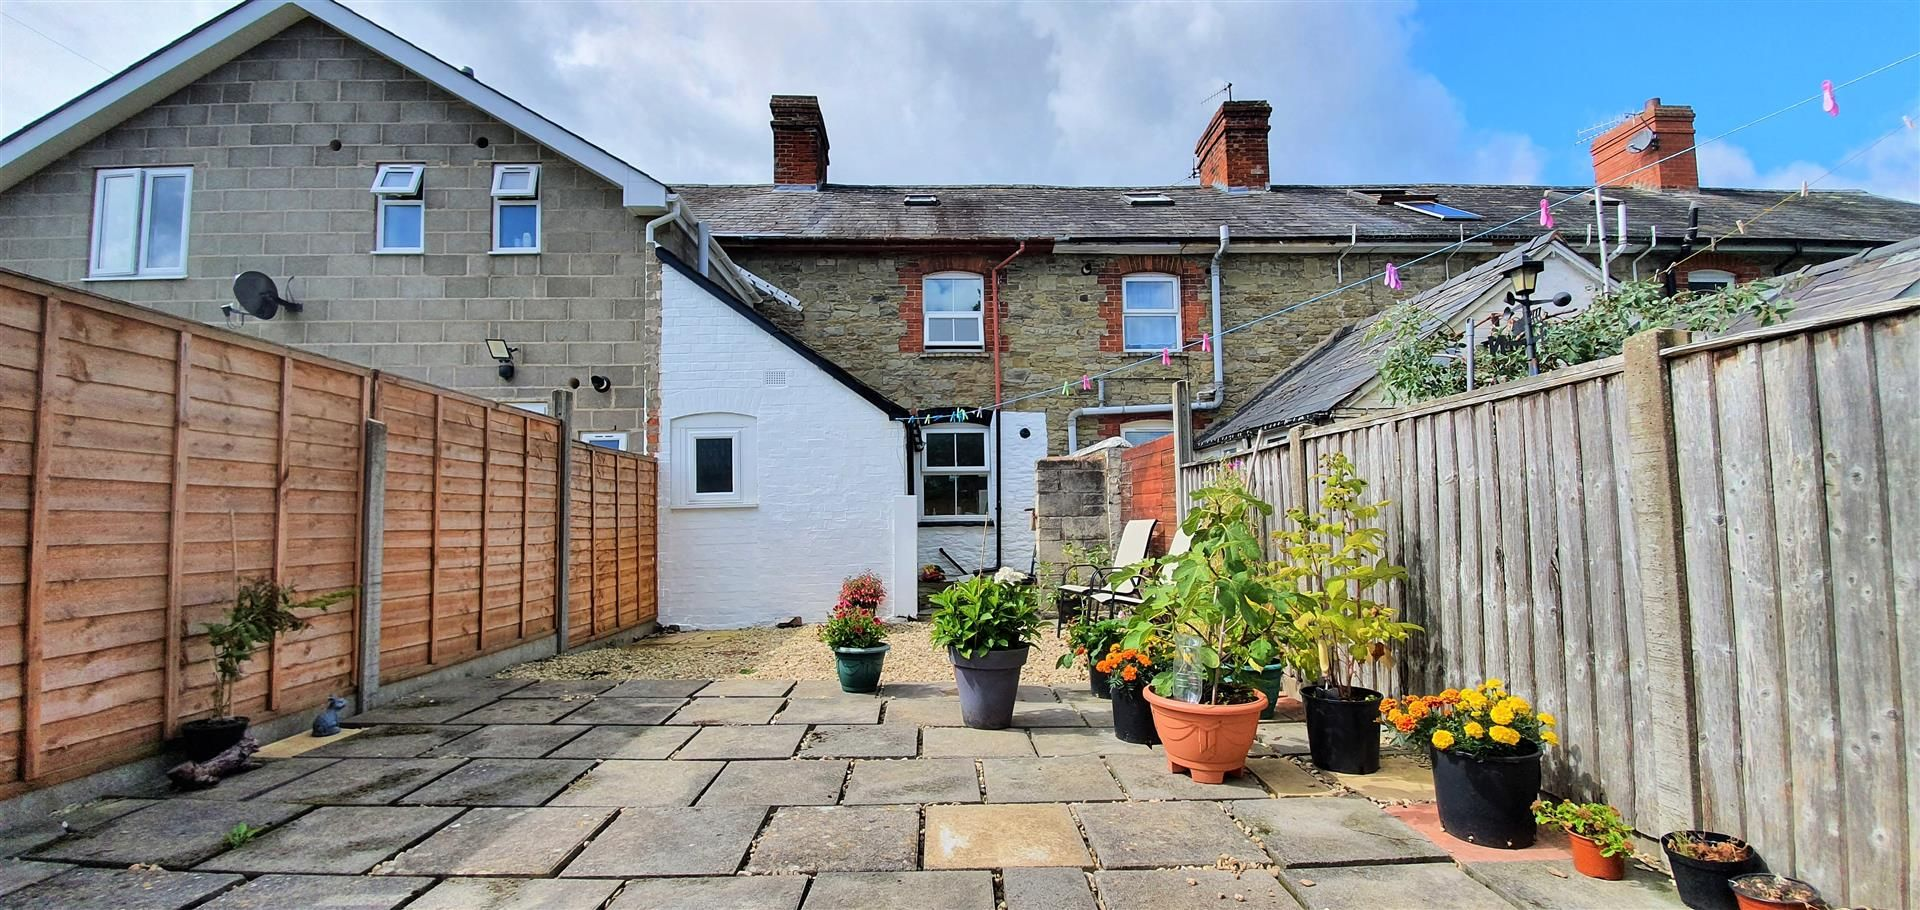 3 bed terraced for sale, HR5